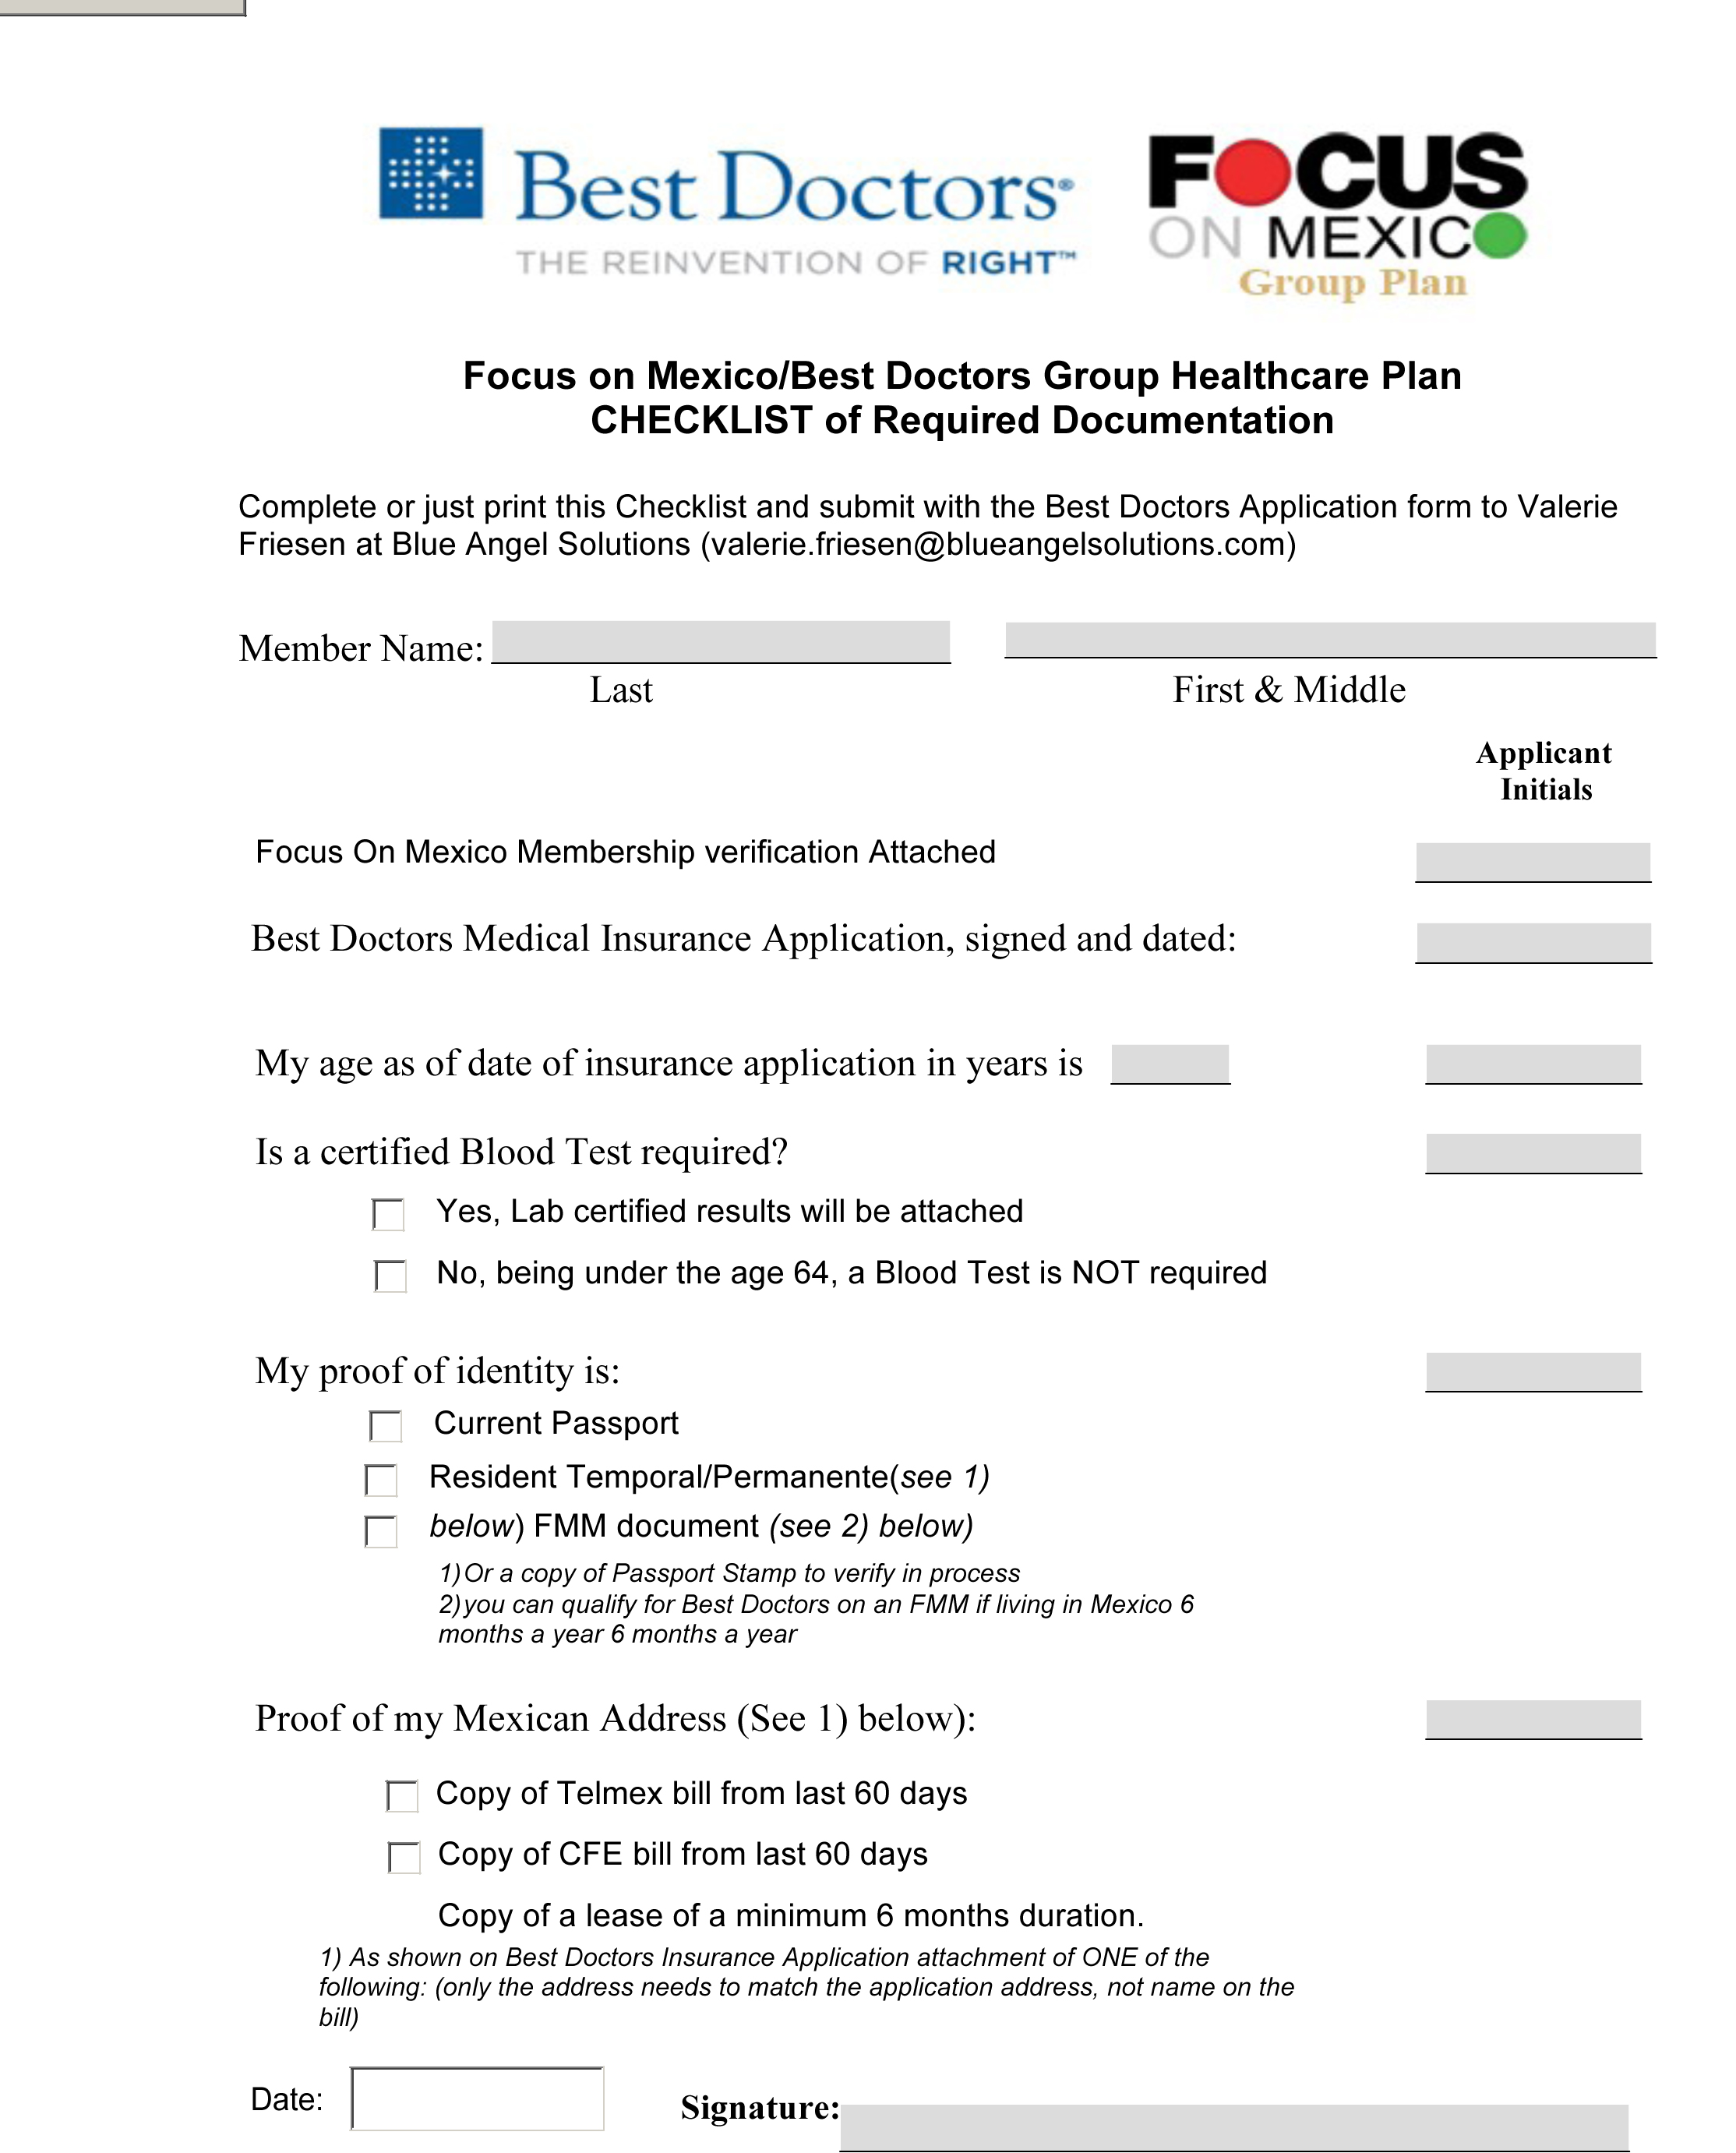 2017-Checklist-for-Focus-on-Mexico-Best-Doctor-Group